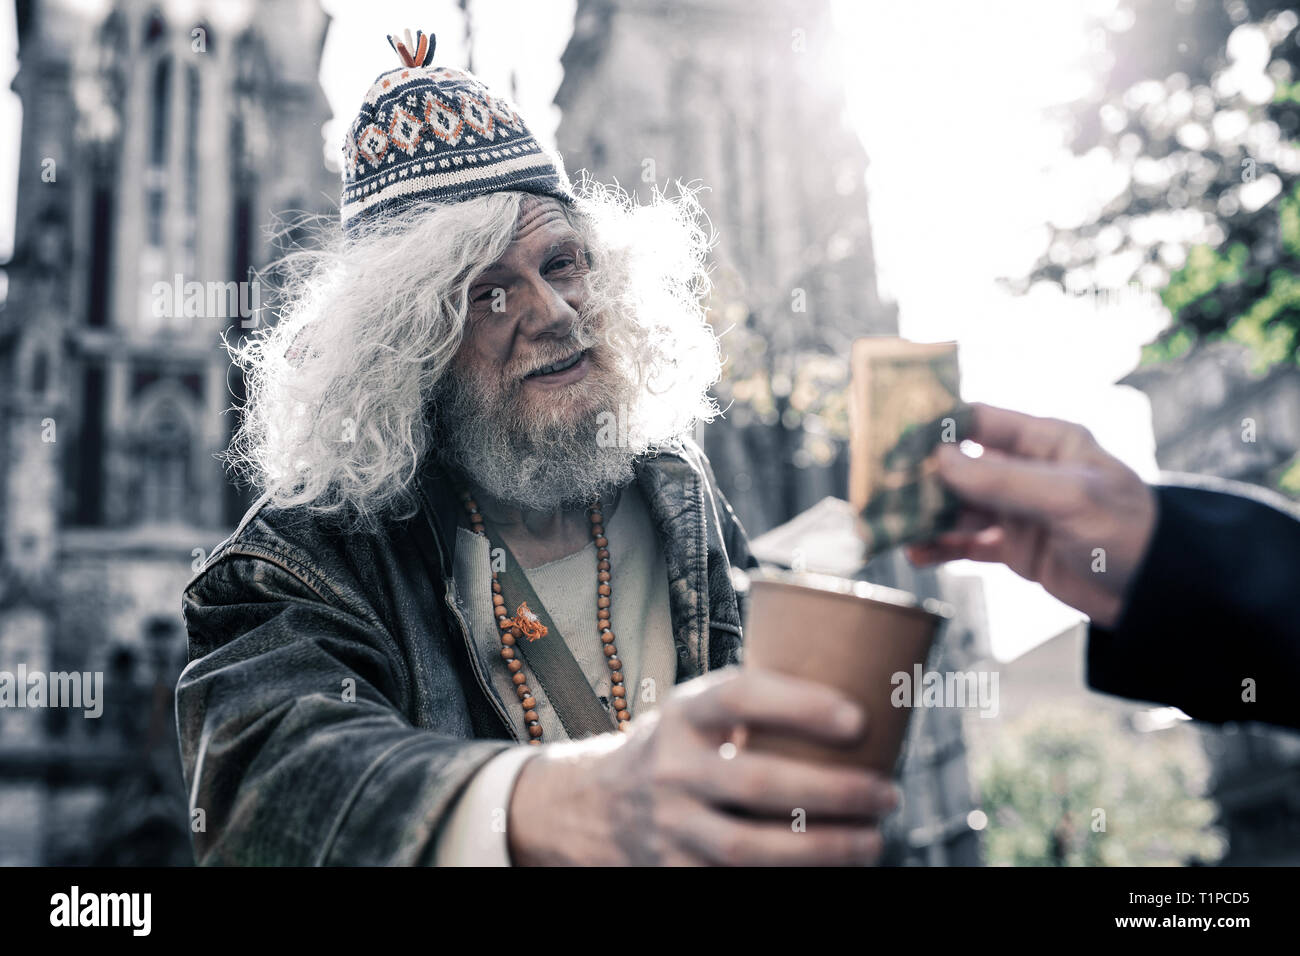 Dirty long-haired homeless wearing funky clothes and asking for money - Stock Image